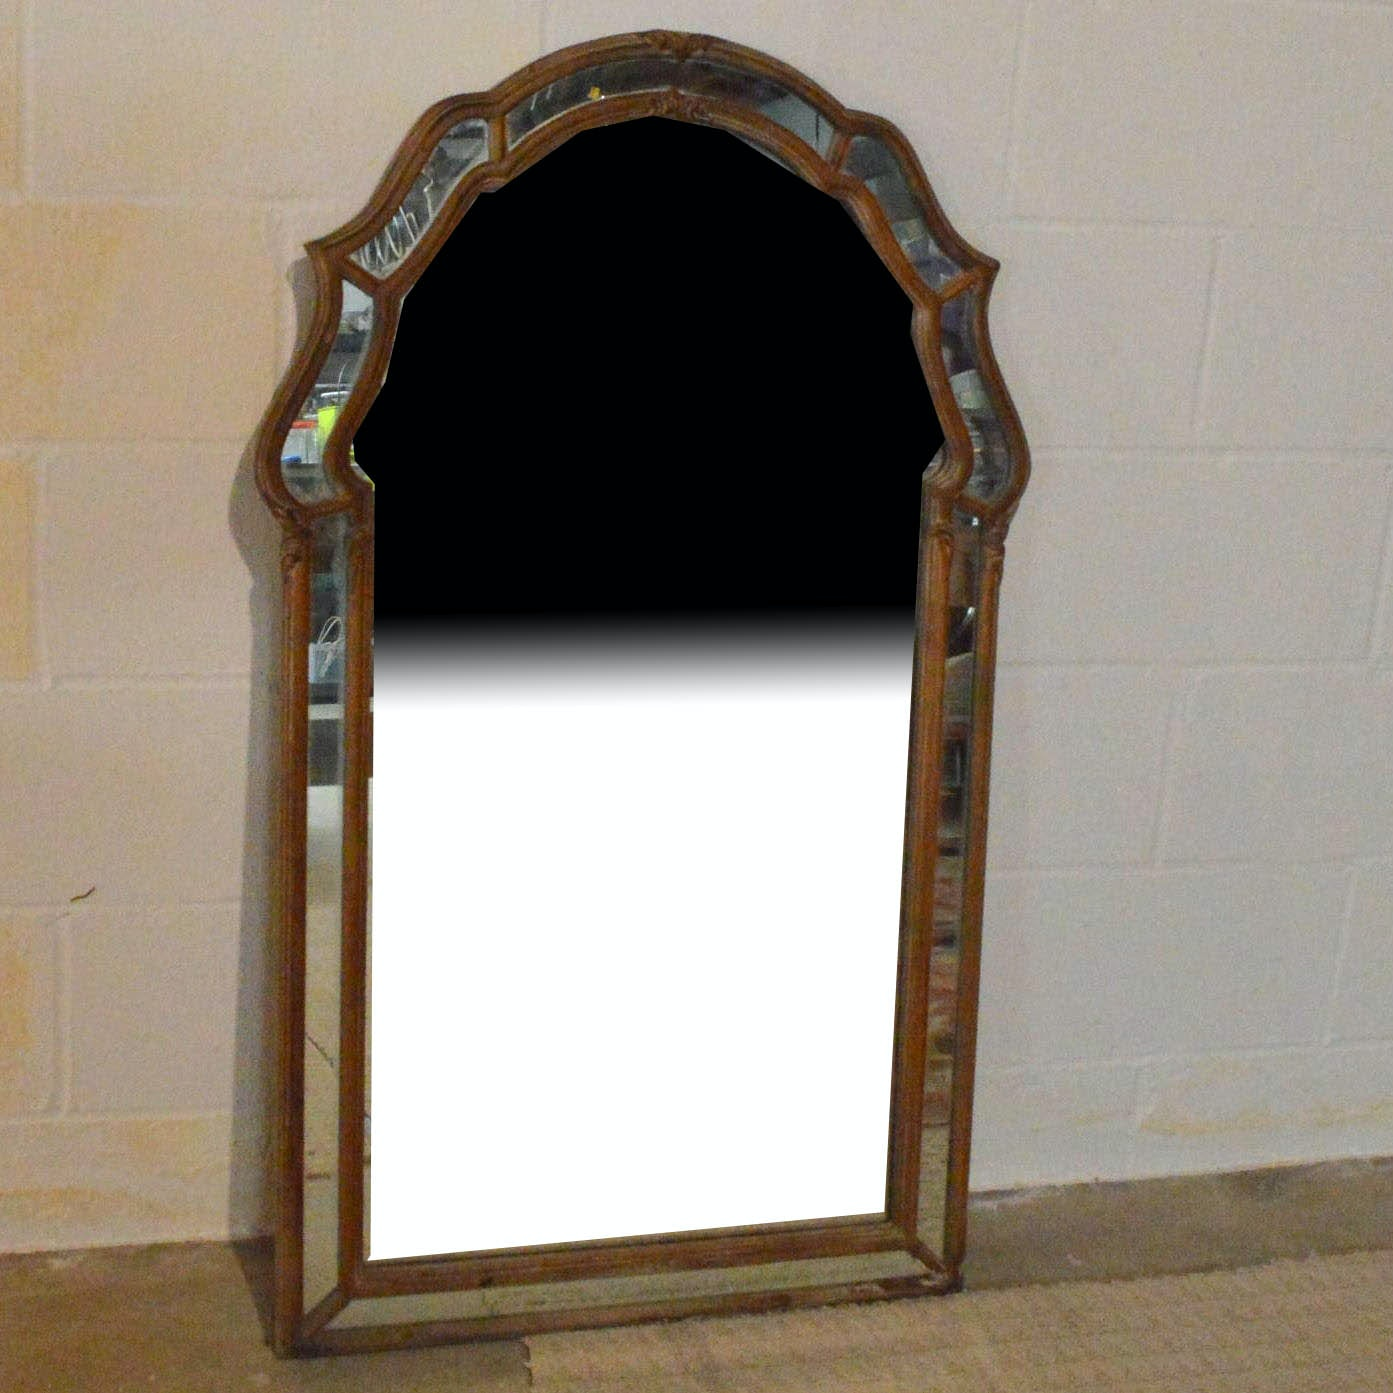 Vintage Wall Mirror with Mirror and Wood Frame